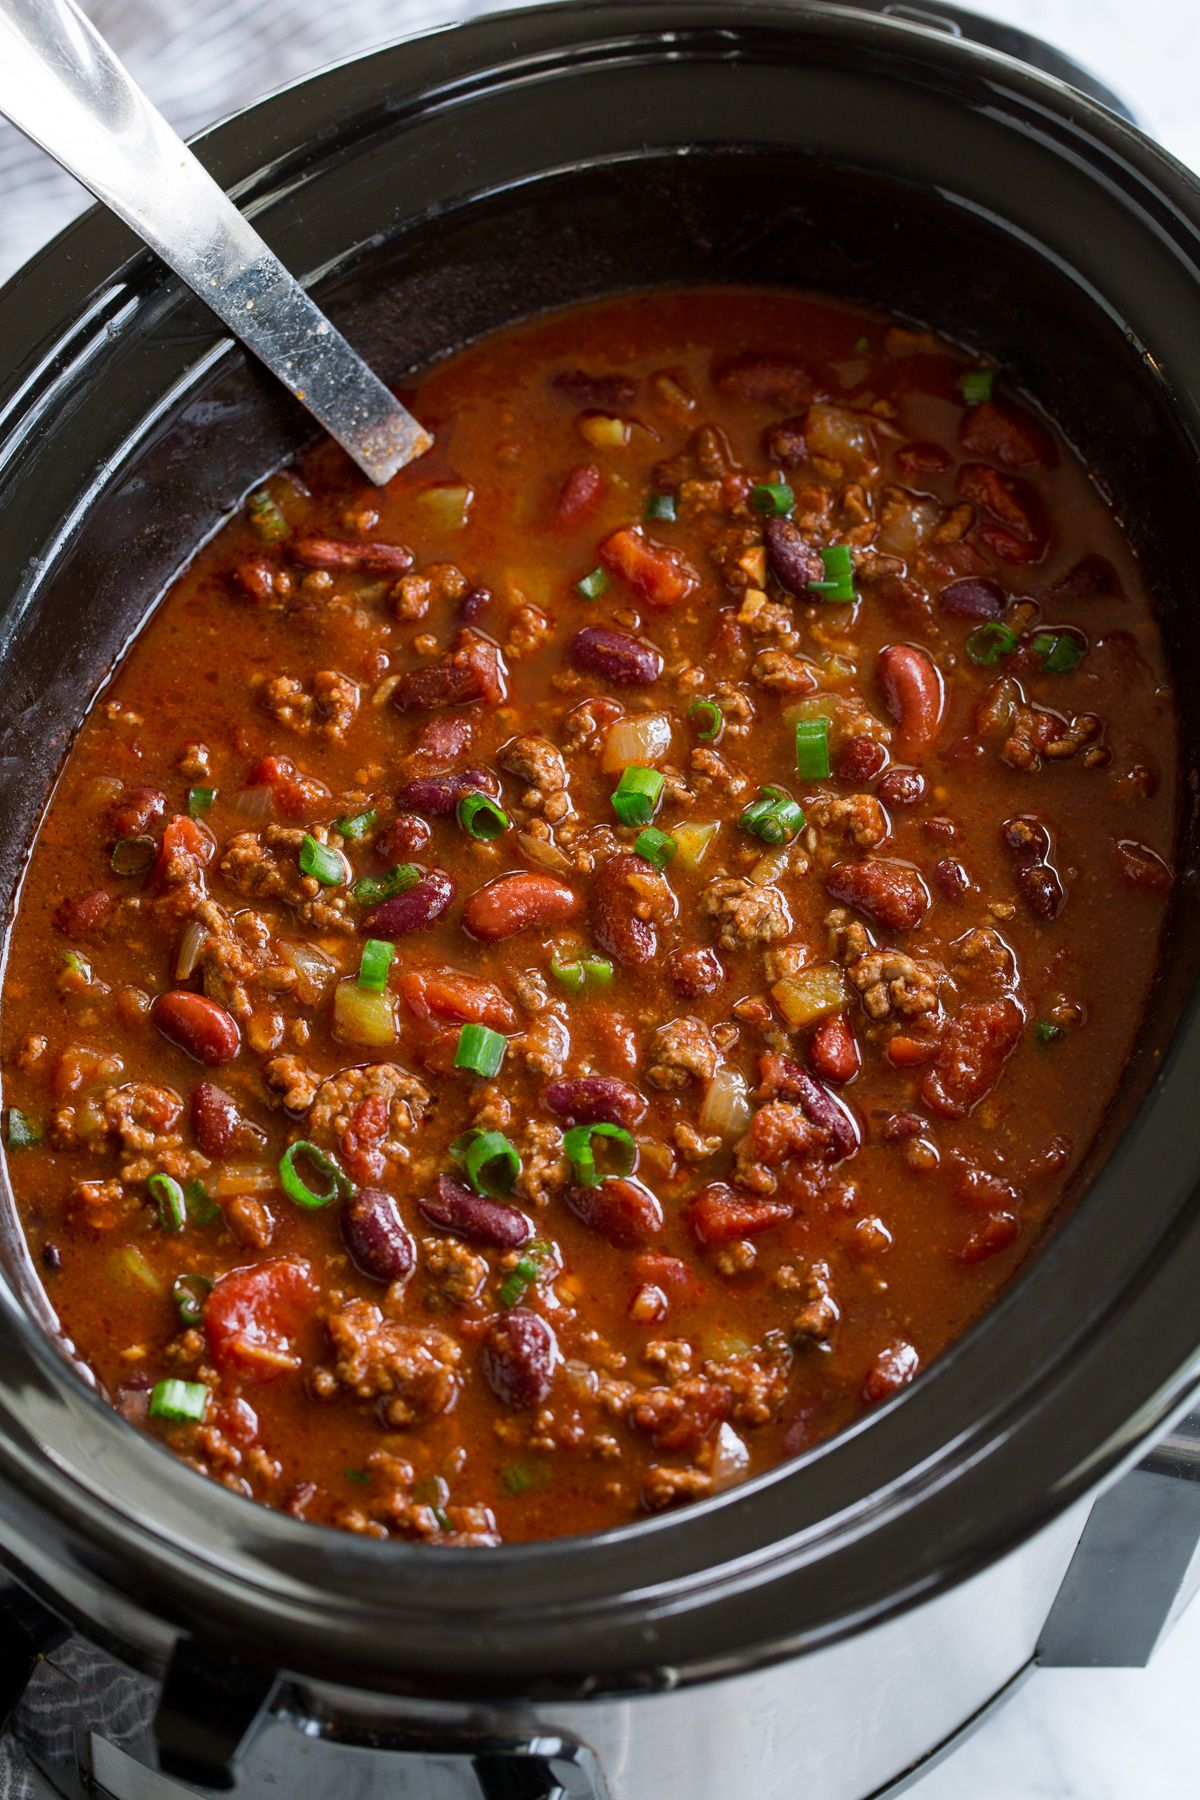 Slow Cooker Chili Best Chili Ever Cooking Classy Slow Cooker Chili Recipe Chili Recipe Crockpot Best Chili Recipe